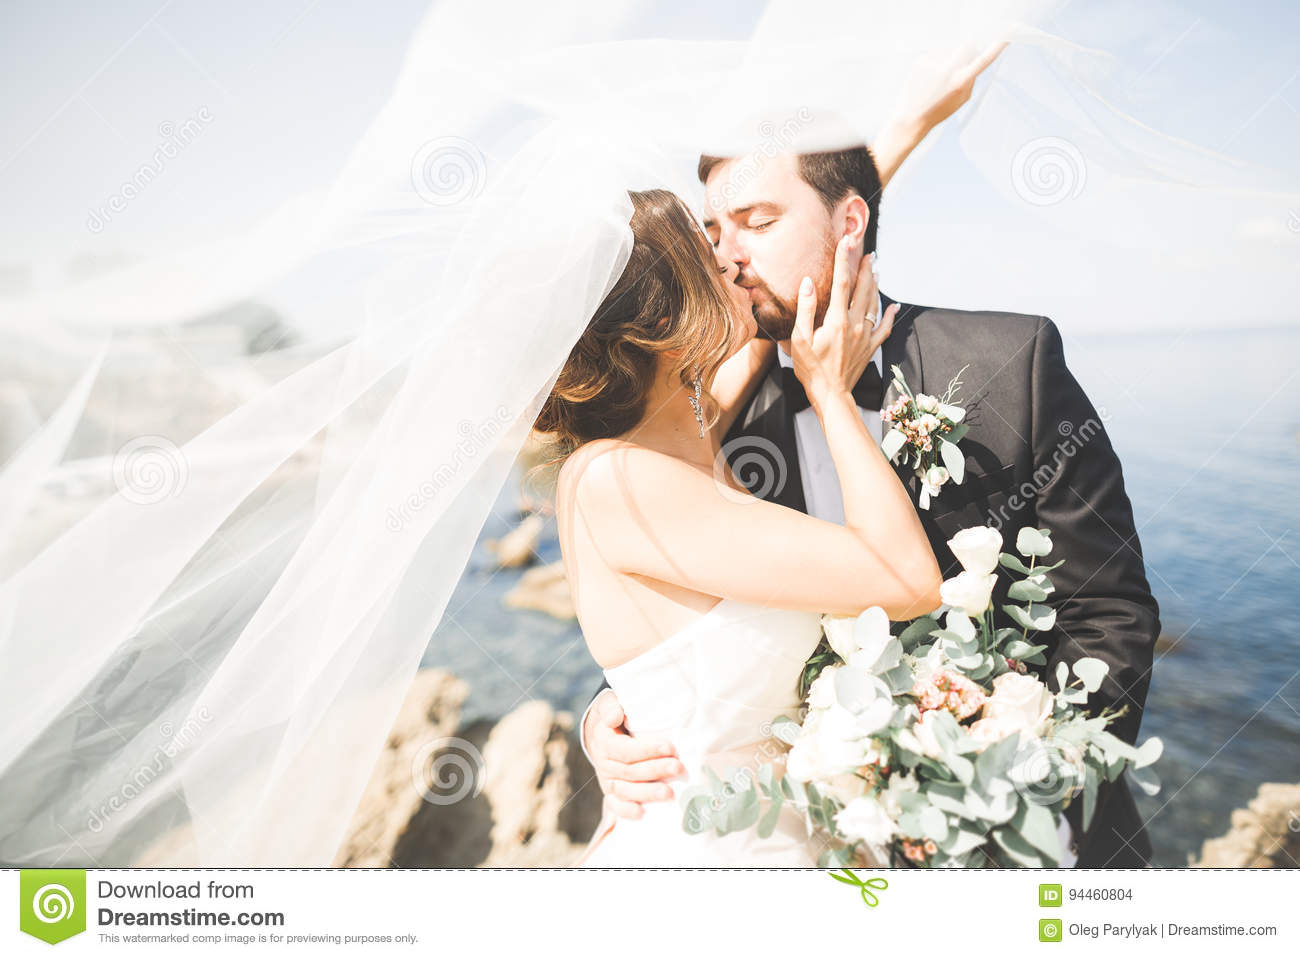 66 266 Romantic Couple Beach Photos Free Royalty Free Stock Photos From Dreamstime